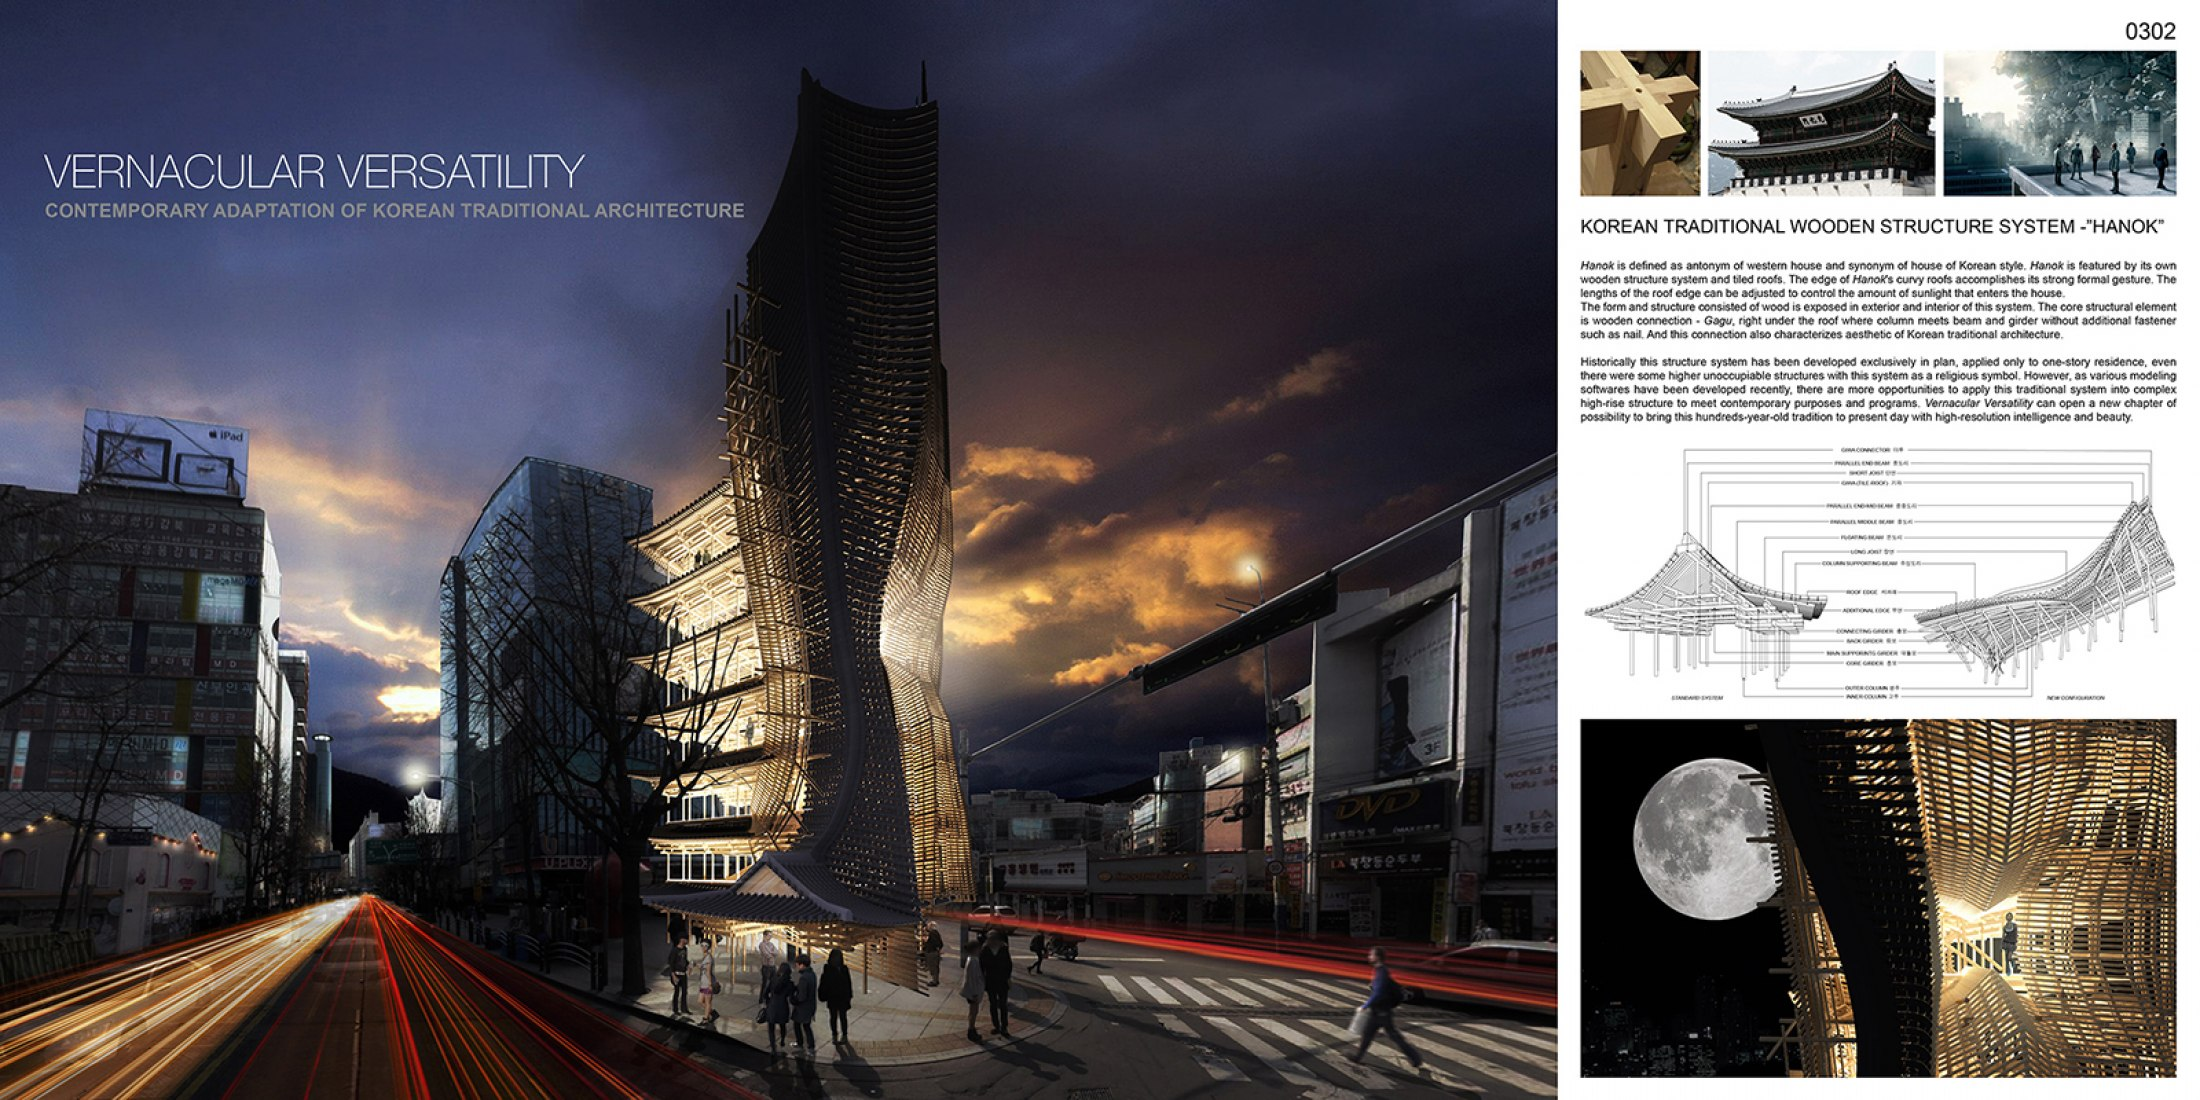 """The first place was awarded to Yong Ju Lee from the United States for his project """"Vernacular Versatility""""."""